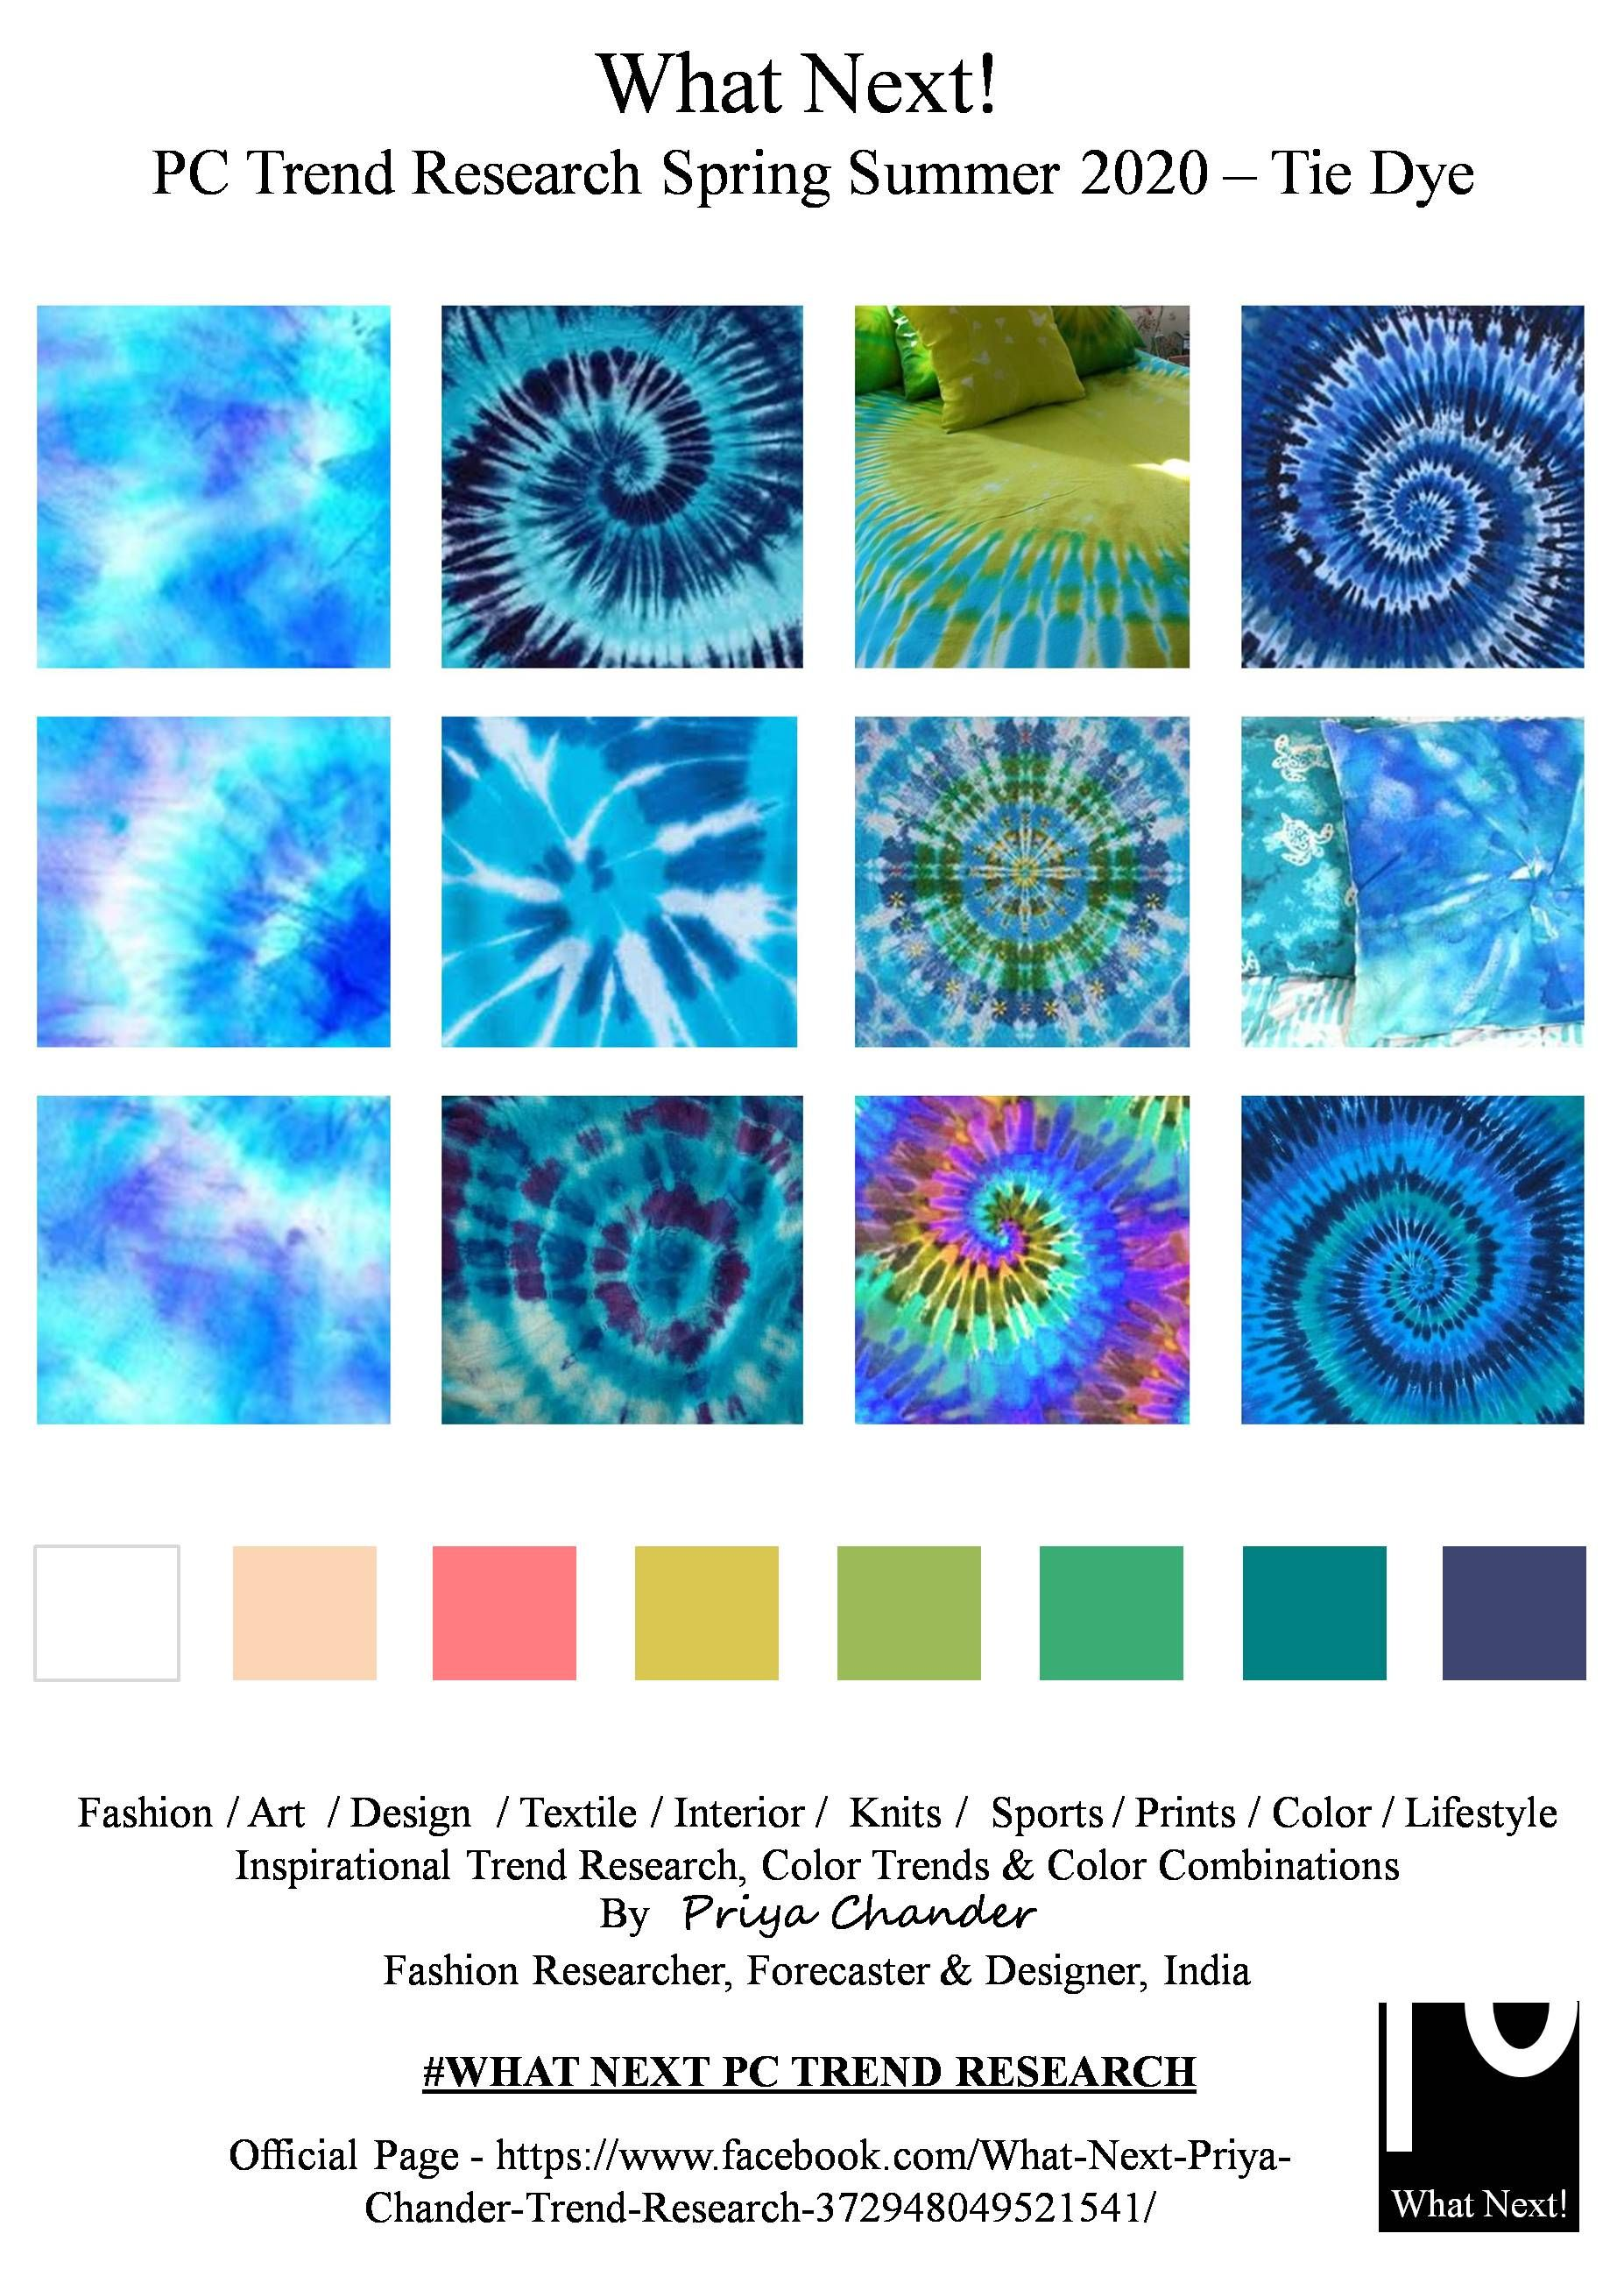 Spring 2020 Color Trends.Tie Dye Prints In 2019 Spring Fashion Trends 2020 Fashion